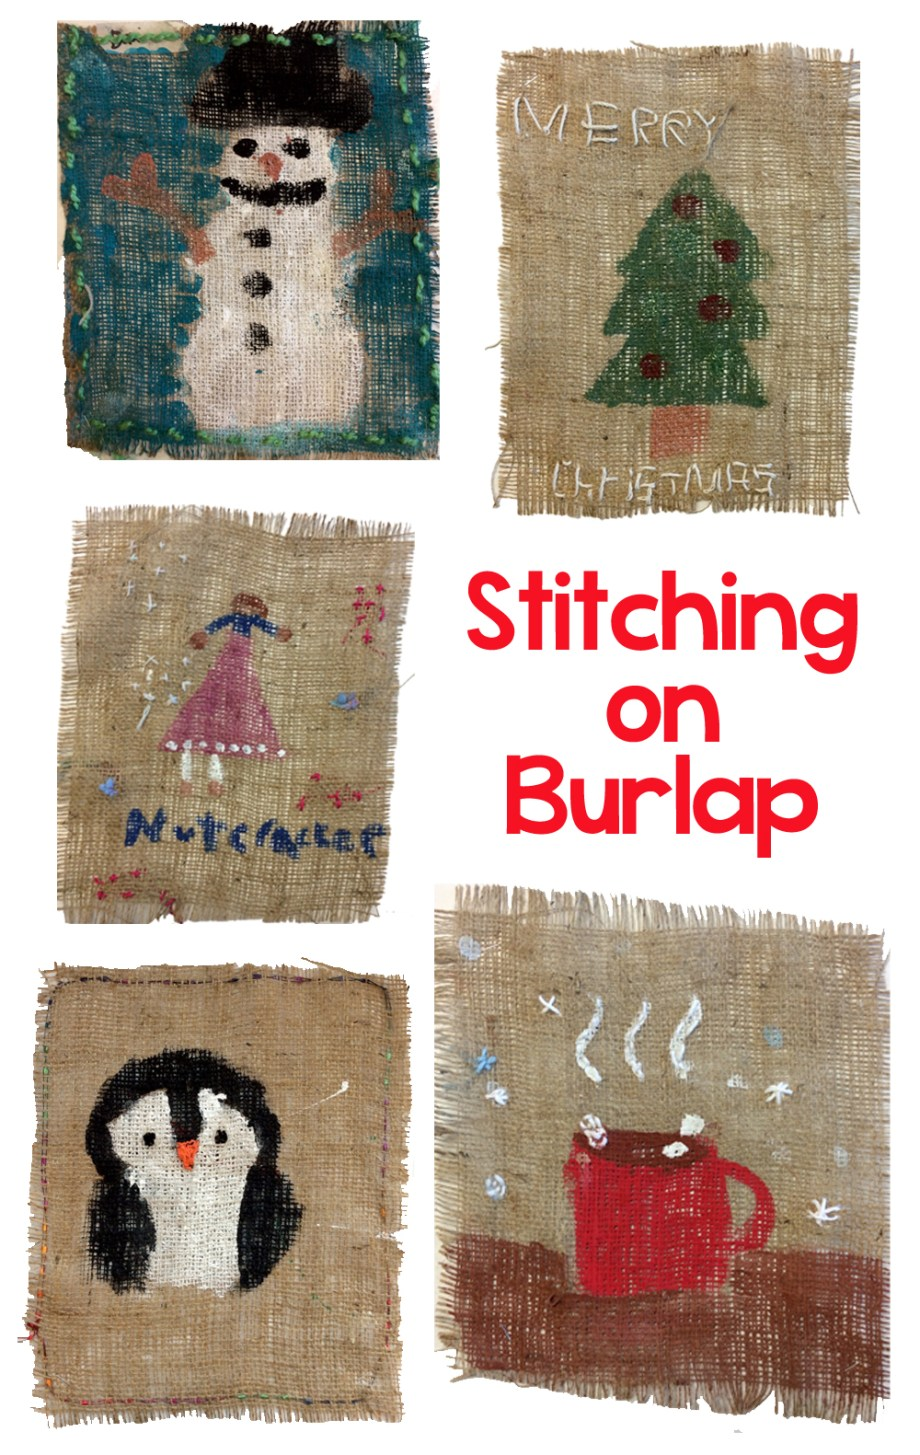 Stitching on Burlap